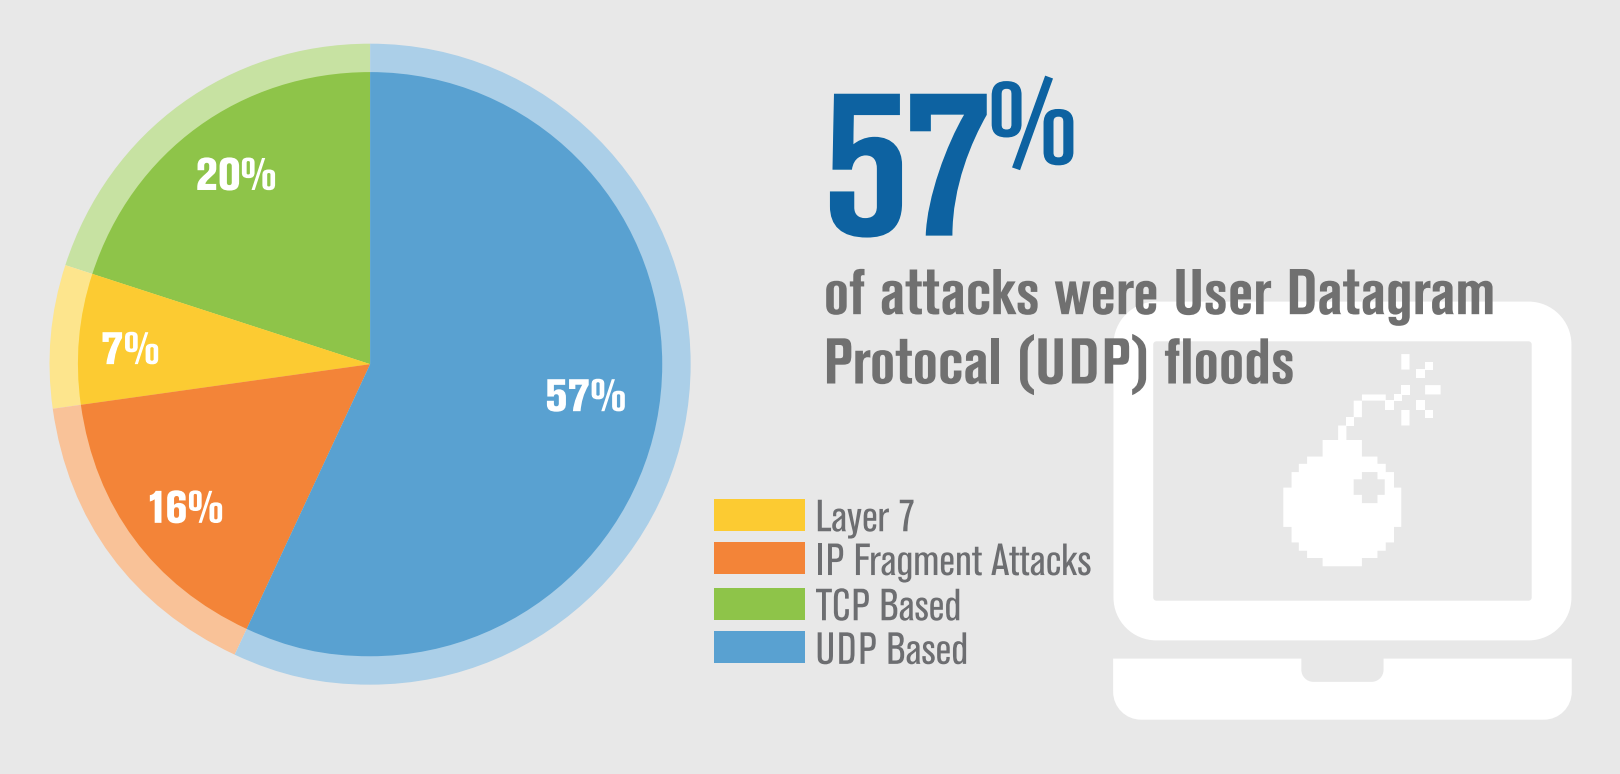 DDoS Trends Report: 25% of Attacks Peaked Over 5 Gbps in Q2 2017